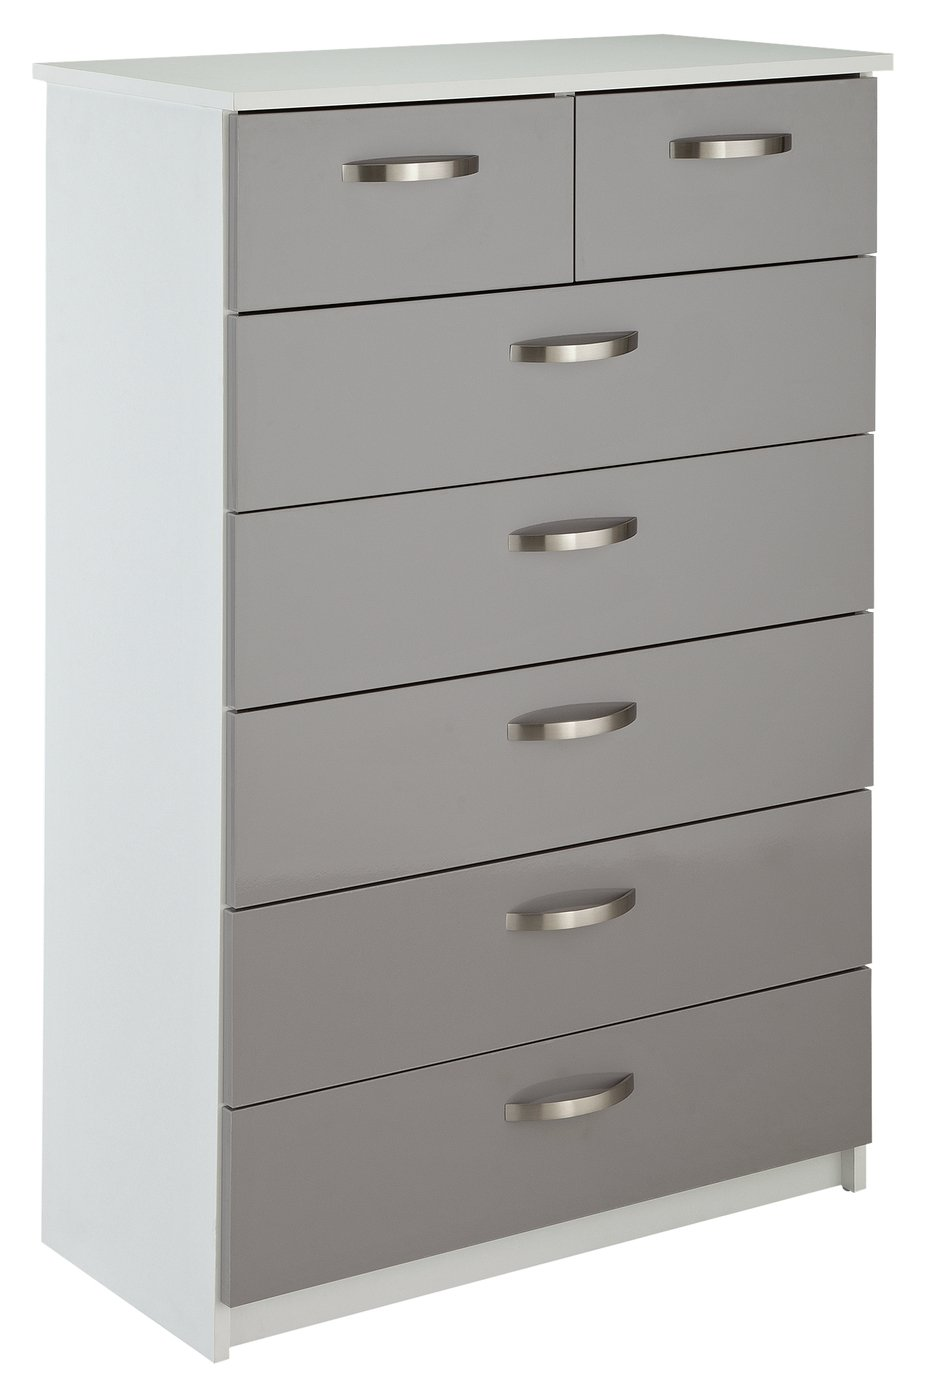 Argos Home Cheval Gloss 5+2 Drawer Chest of Drawers - Grey